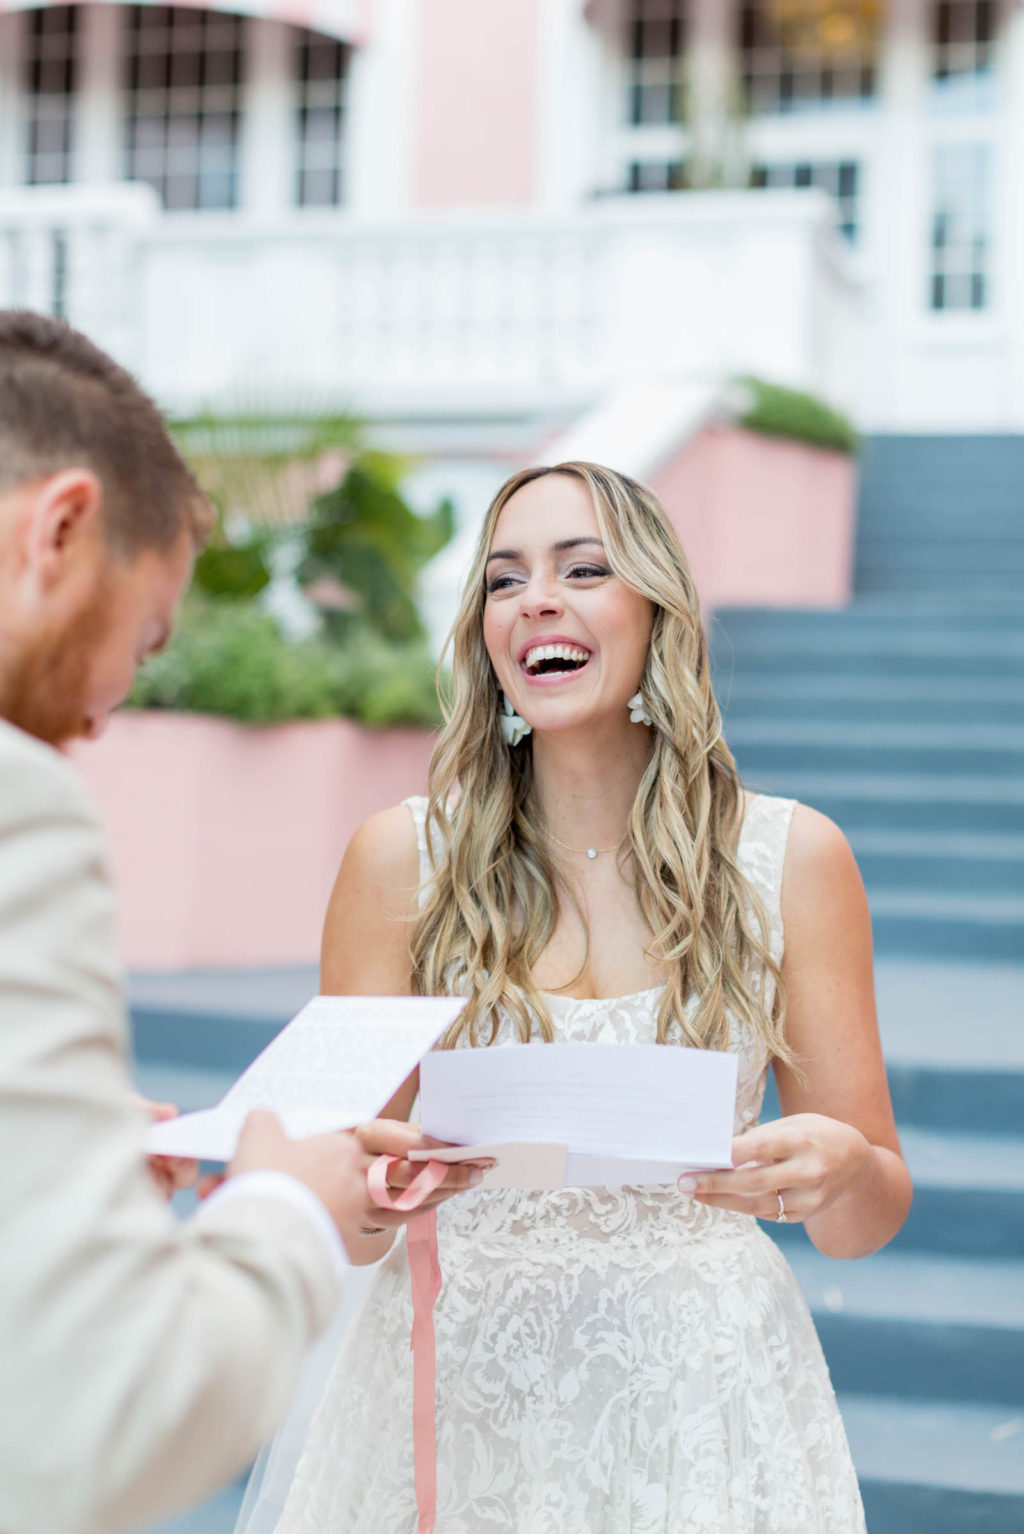 Bride and Groom Outdoor Portrait First Look Reading Love Letters to Each Other